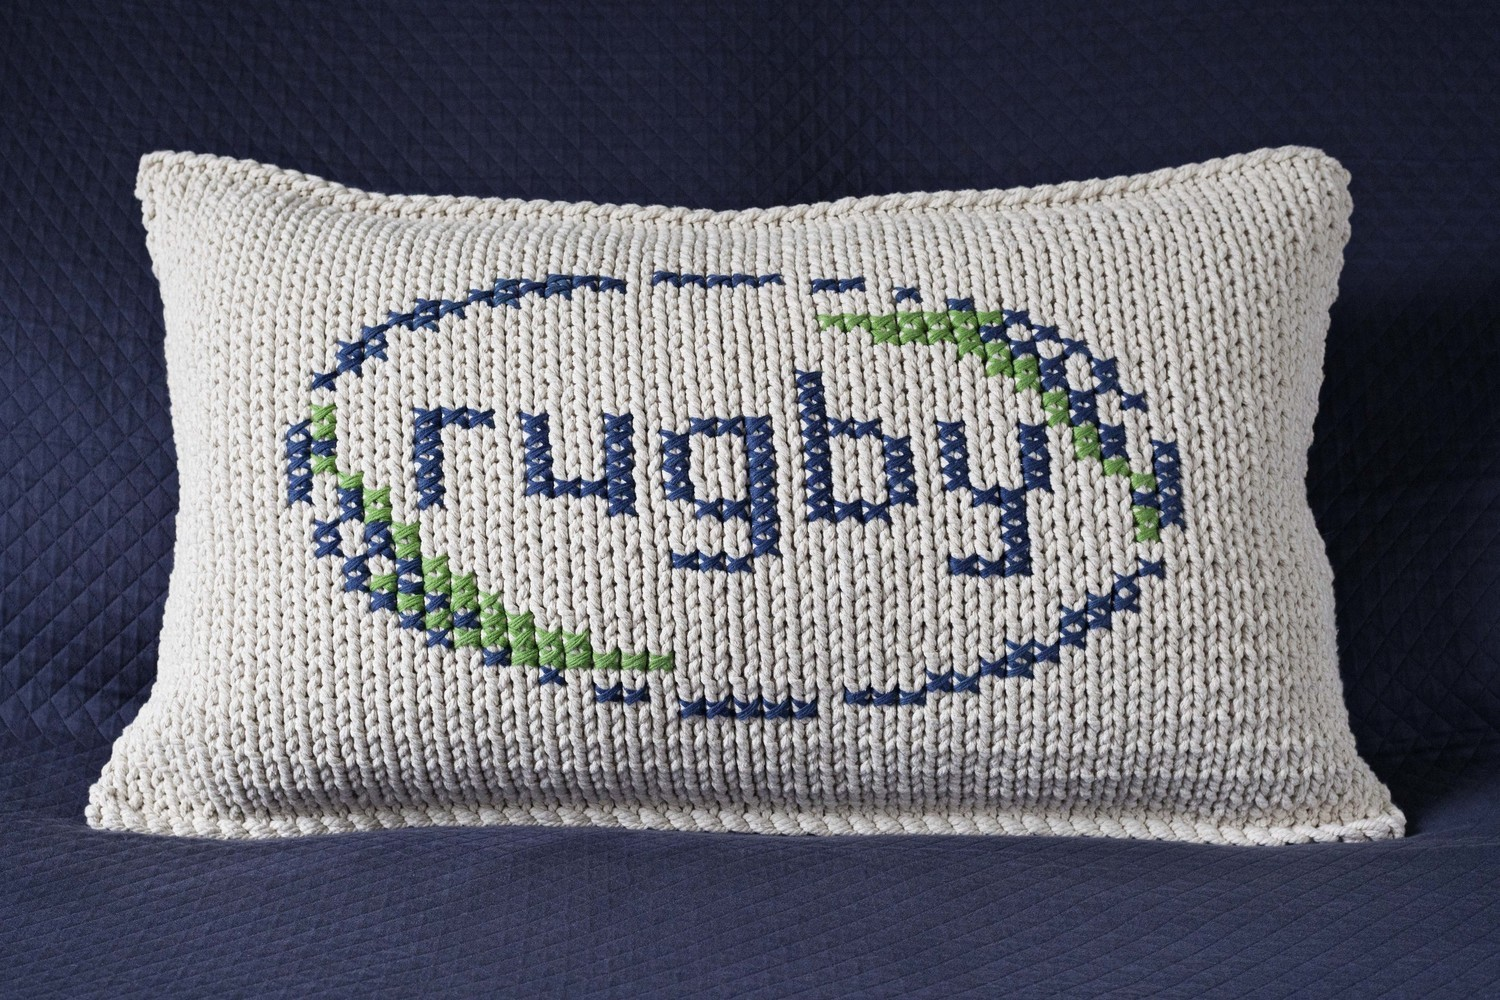 80 x 50cm Rugby Ball - less 50%